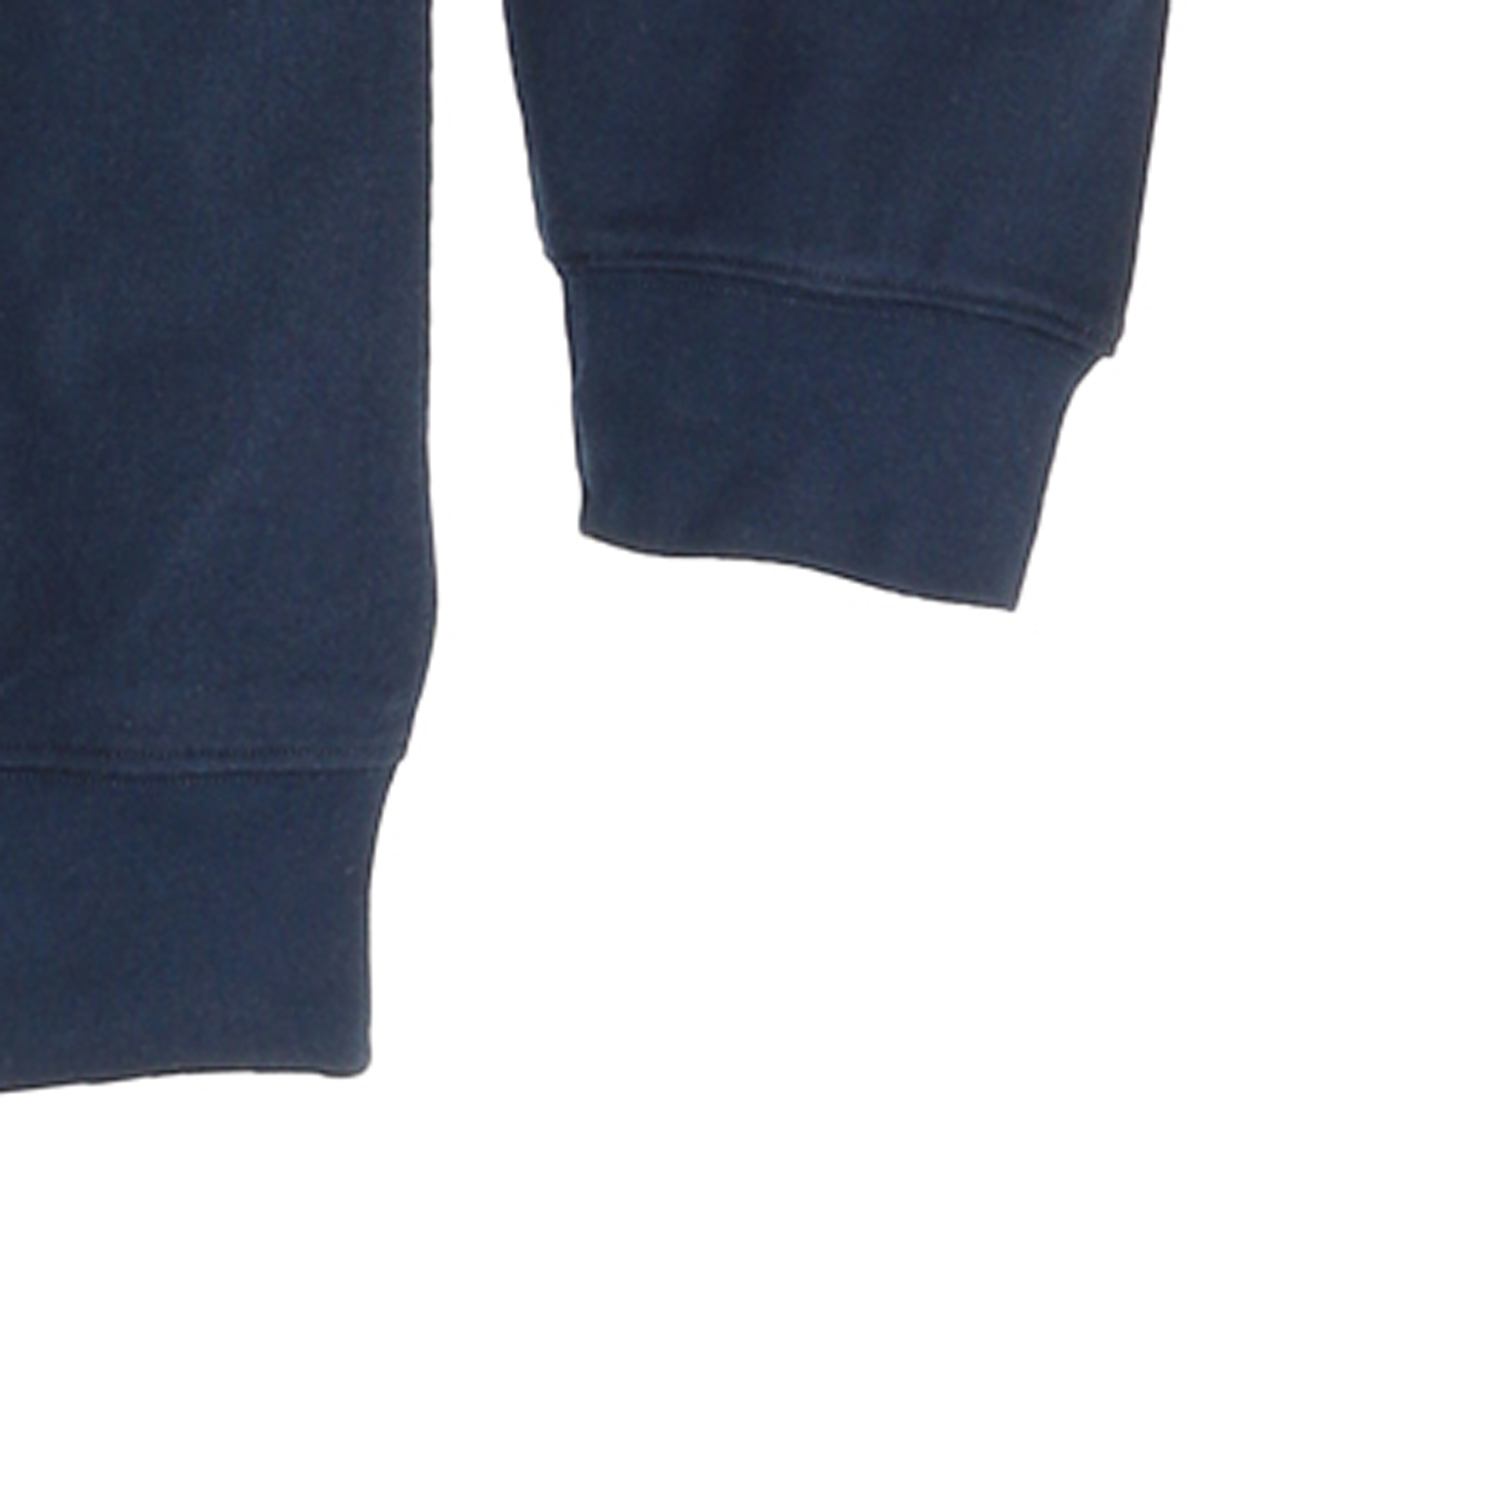 Detail Image to Darkblue Sweatshirt ATHEN by ADAMO for men, up to size 14 XL